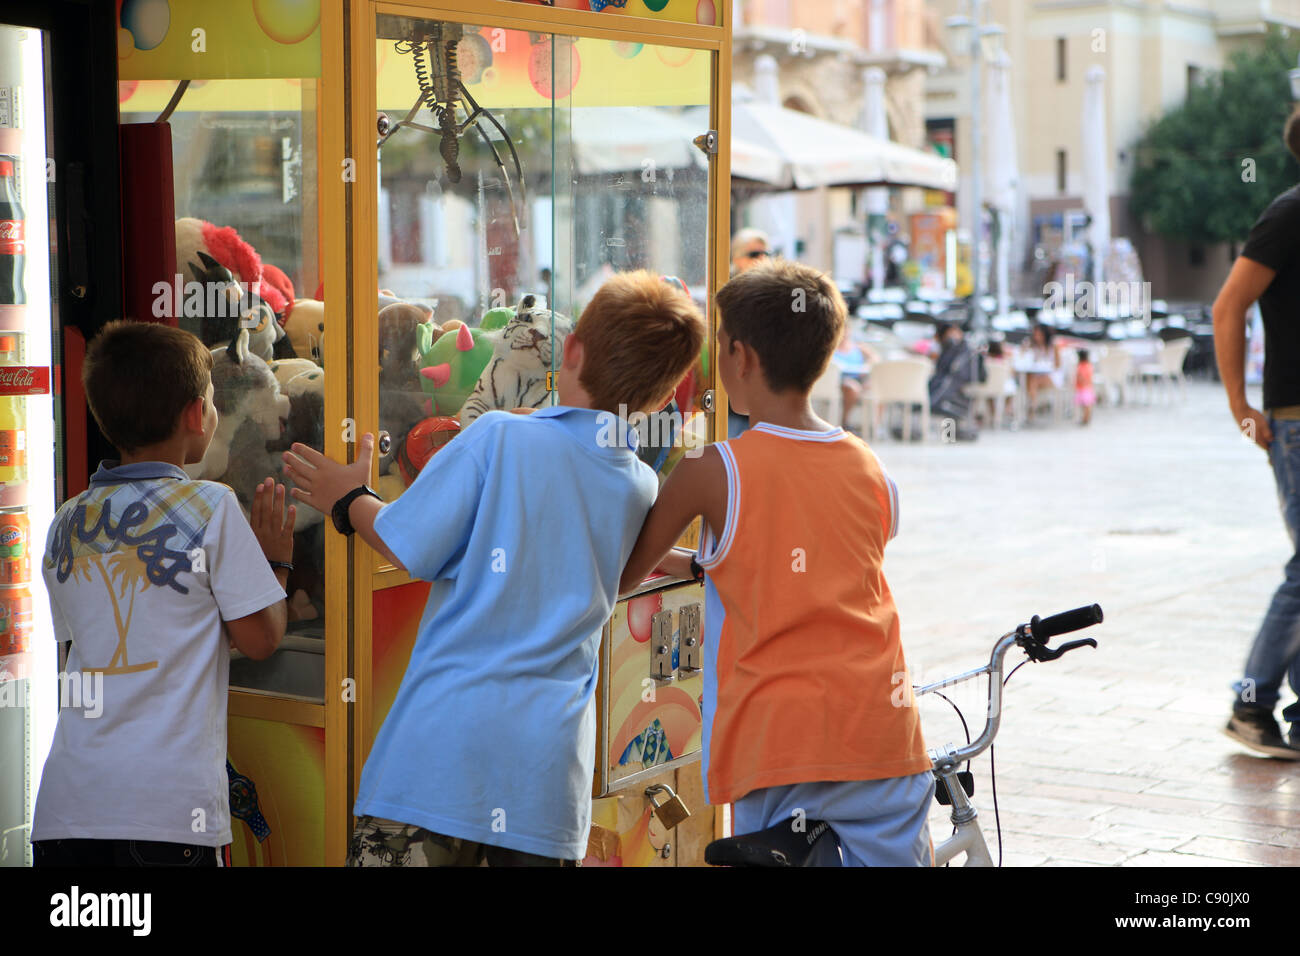 Boys at a soft toy claw crane machine in Syntagmatos Square, Nafplion, Greece - Stock Image